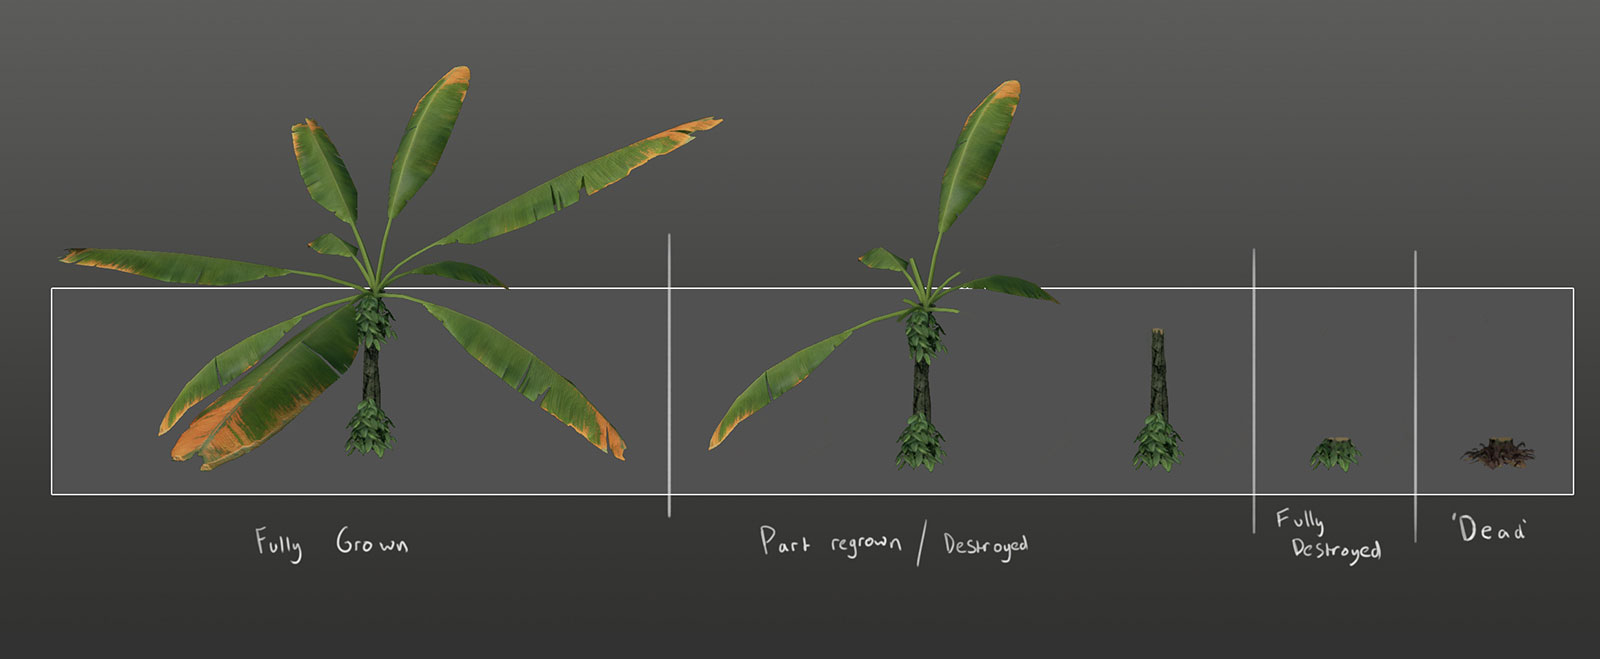 eden star big leaf concept damaged states